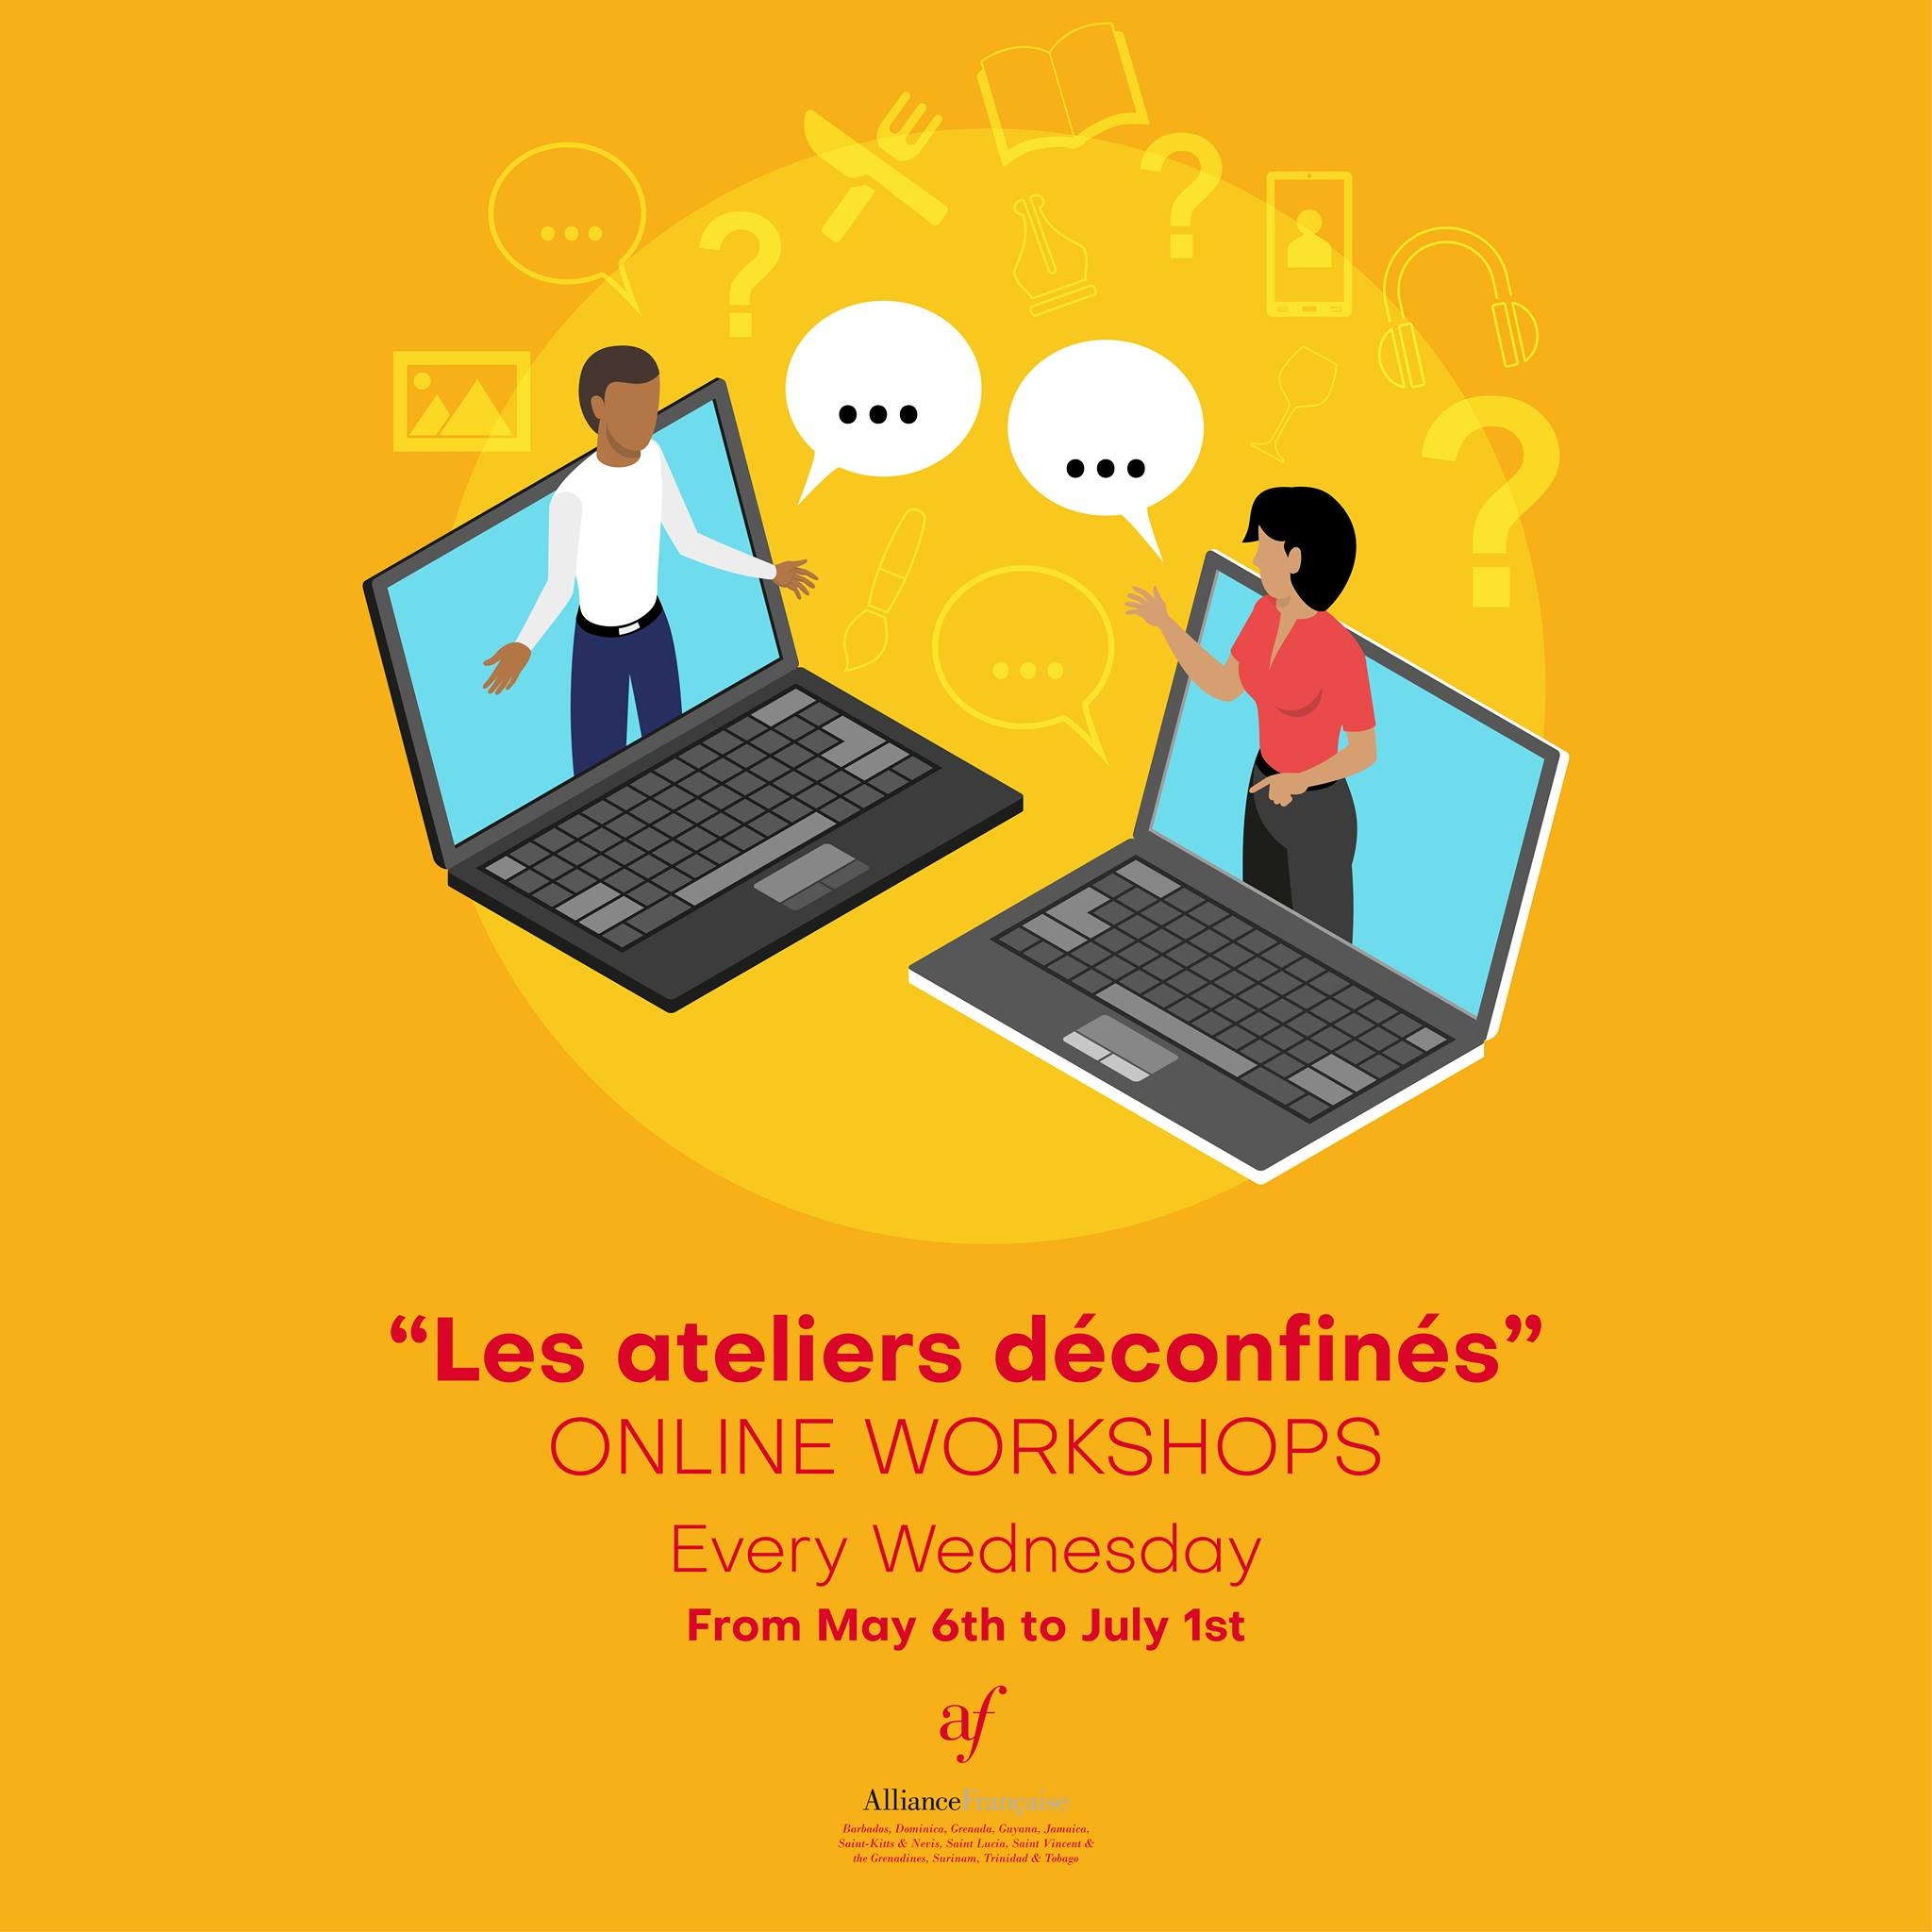 Alliance francaise les ateliers deconfines online workshops every wednesday